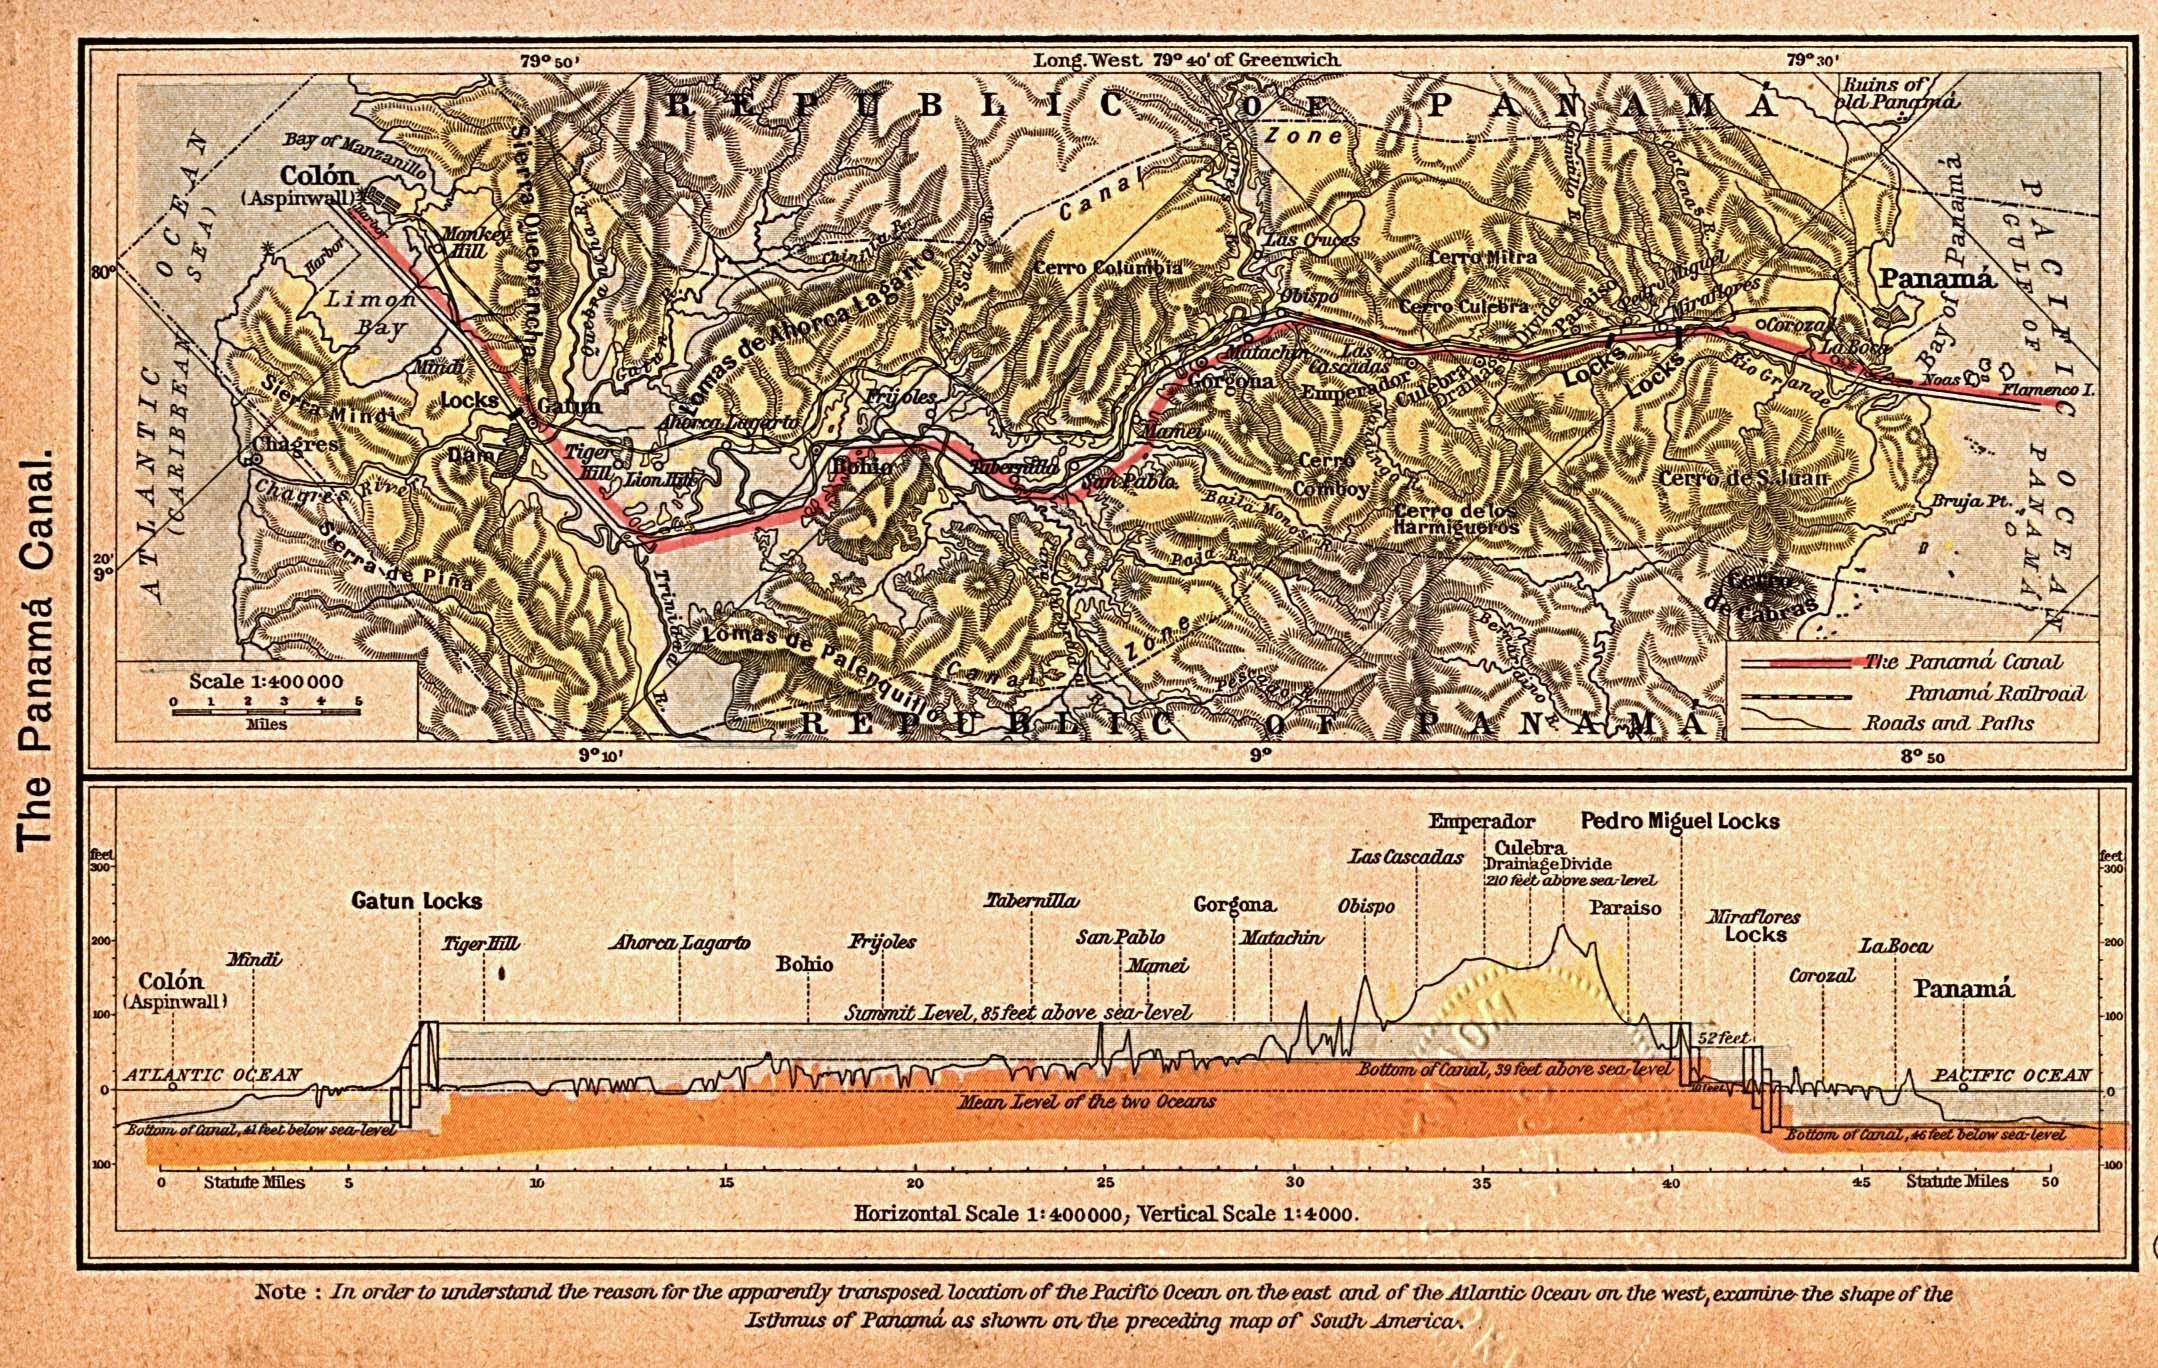 The Panama Canal Map, Panama 1923